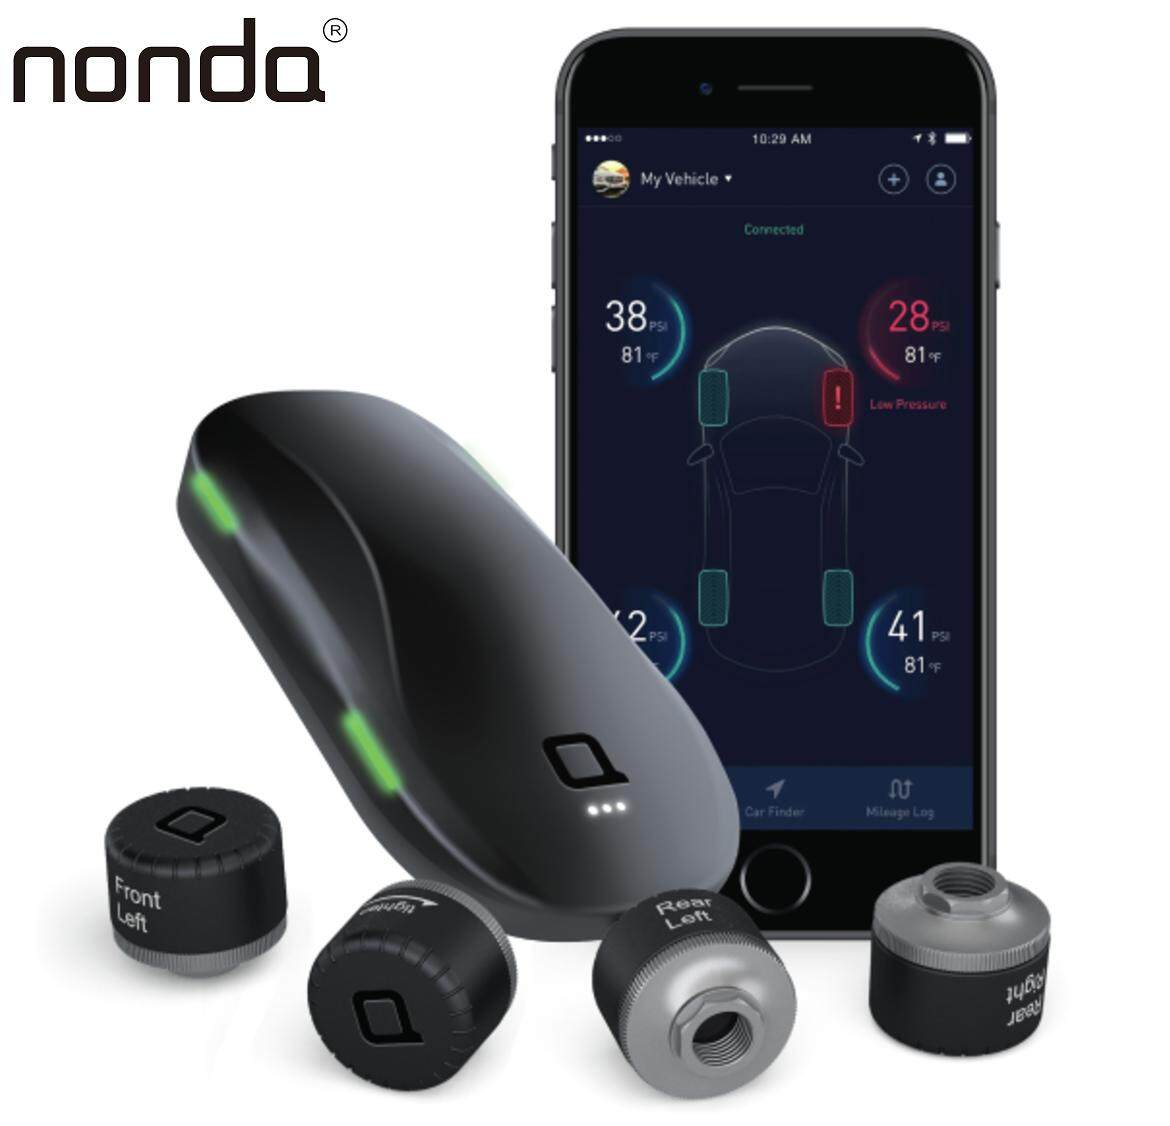 Nonda Zus Smart Tire Safety Monitor By Axtro